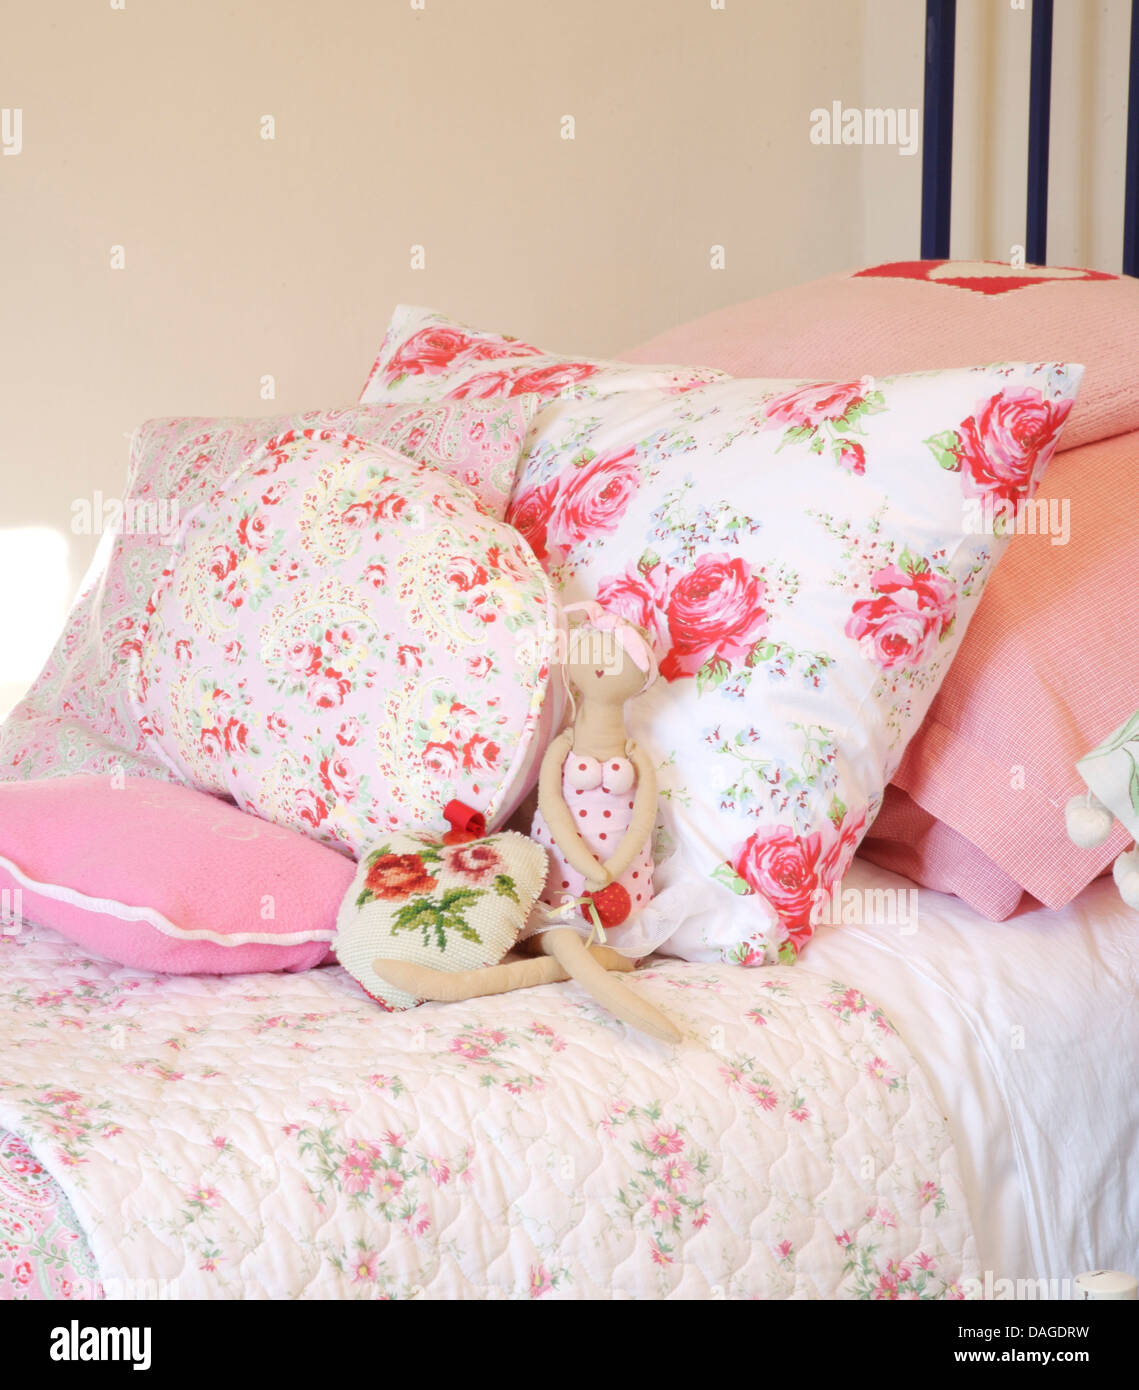 Close-up of pink rose patterned cushions on bed with rose ...